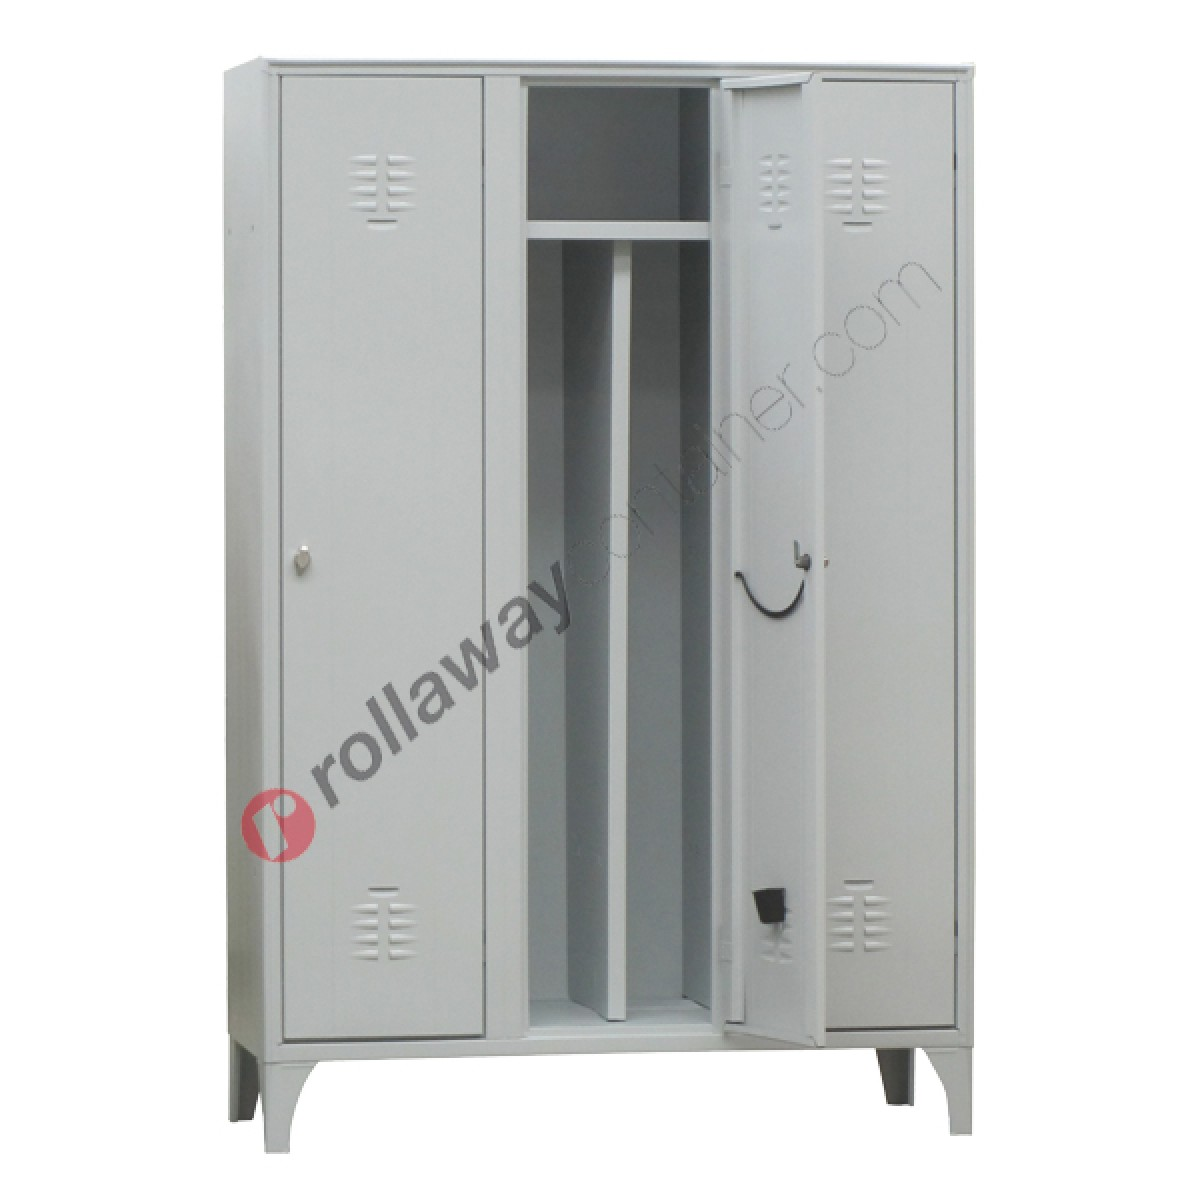 Armadietti Spogliatoio Sporco Pulito.Clean And Dirty Lockers Metal 3 Doors With Lock 3 Places